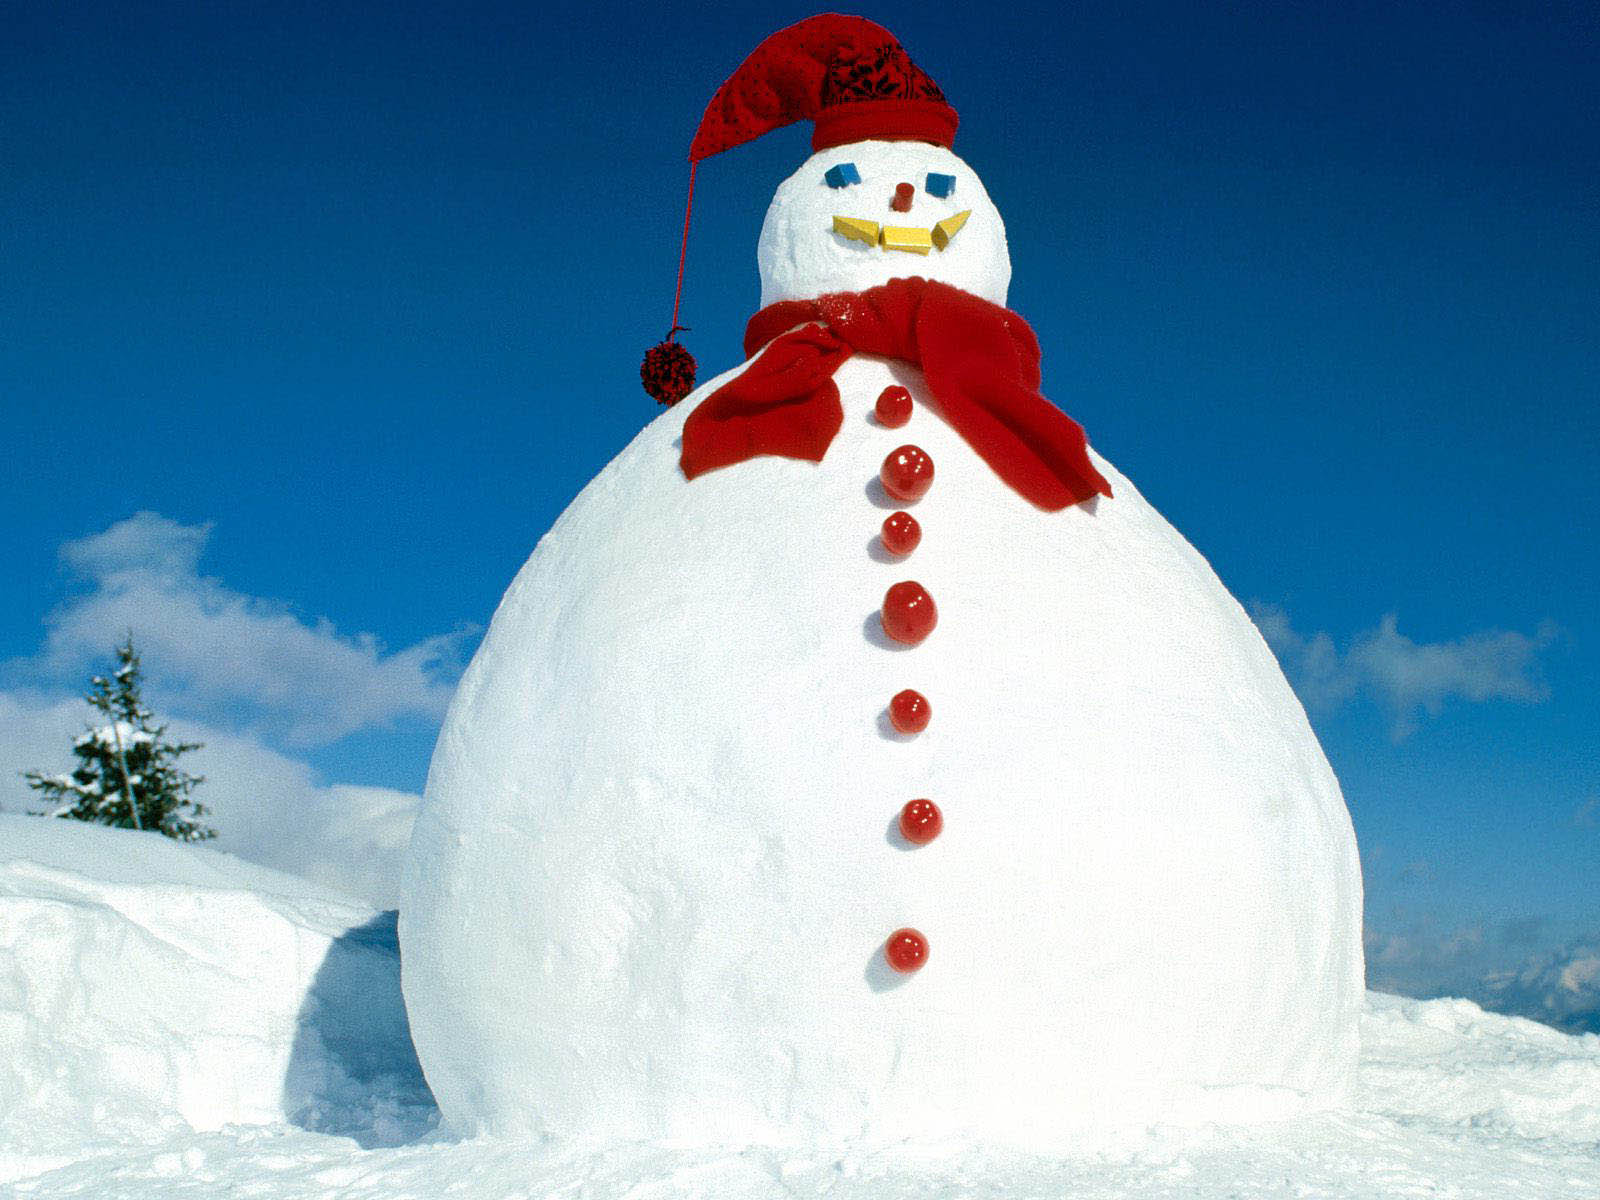 Download wallpapers Snowman Desktop Wallpapers and Backgrounds 1600x1200